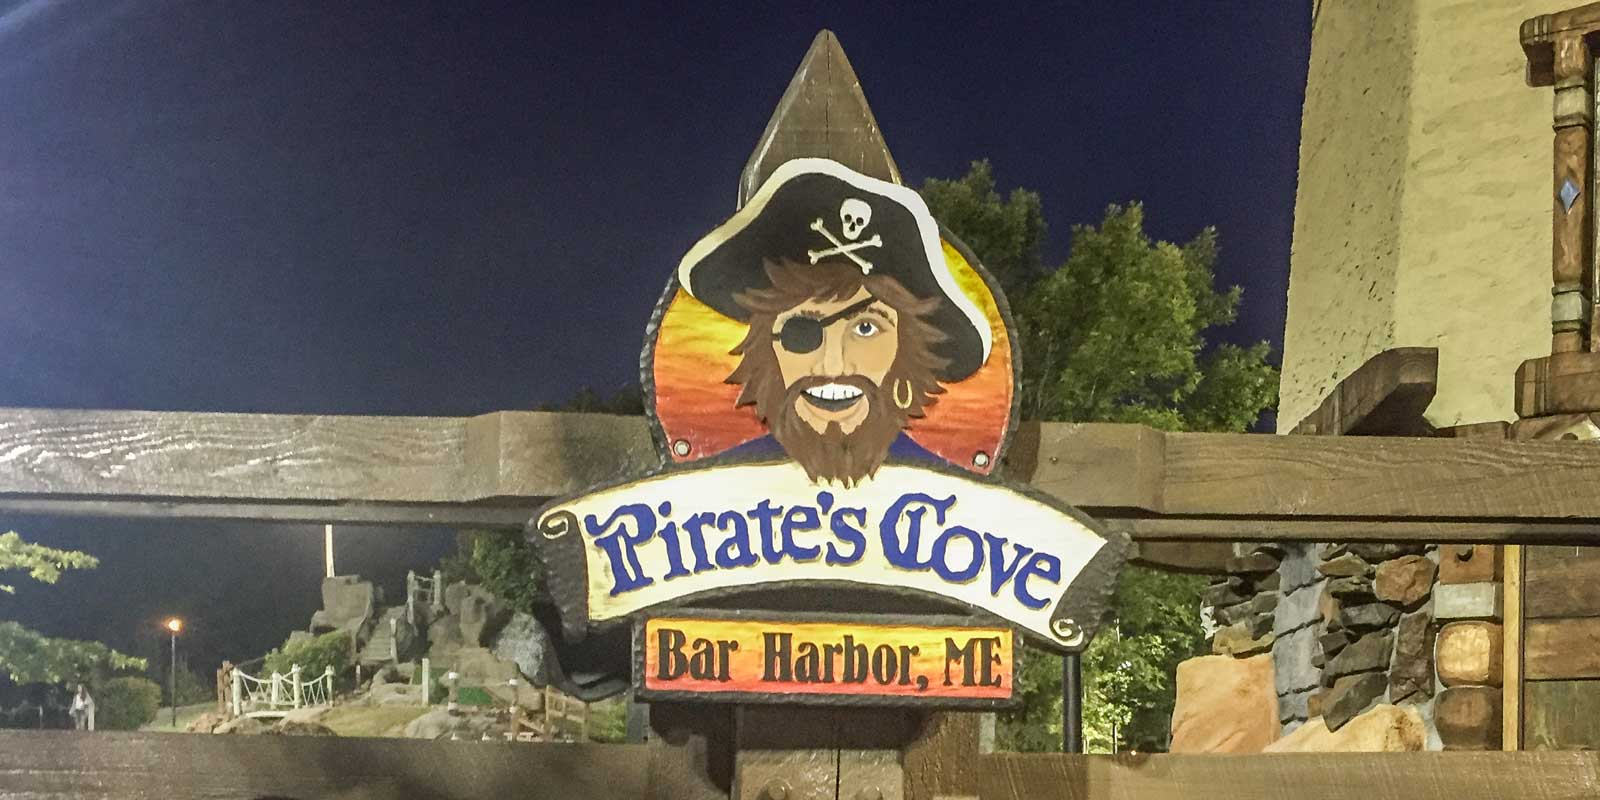 Closeup of a sign for Pirate's Cove Adventure Golf in Bar Harbor, ME.